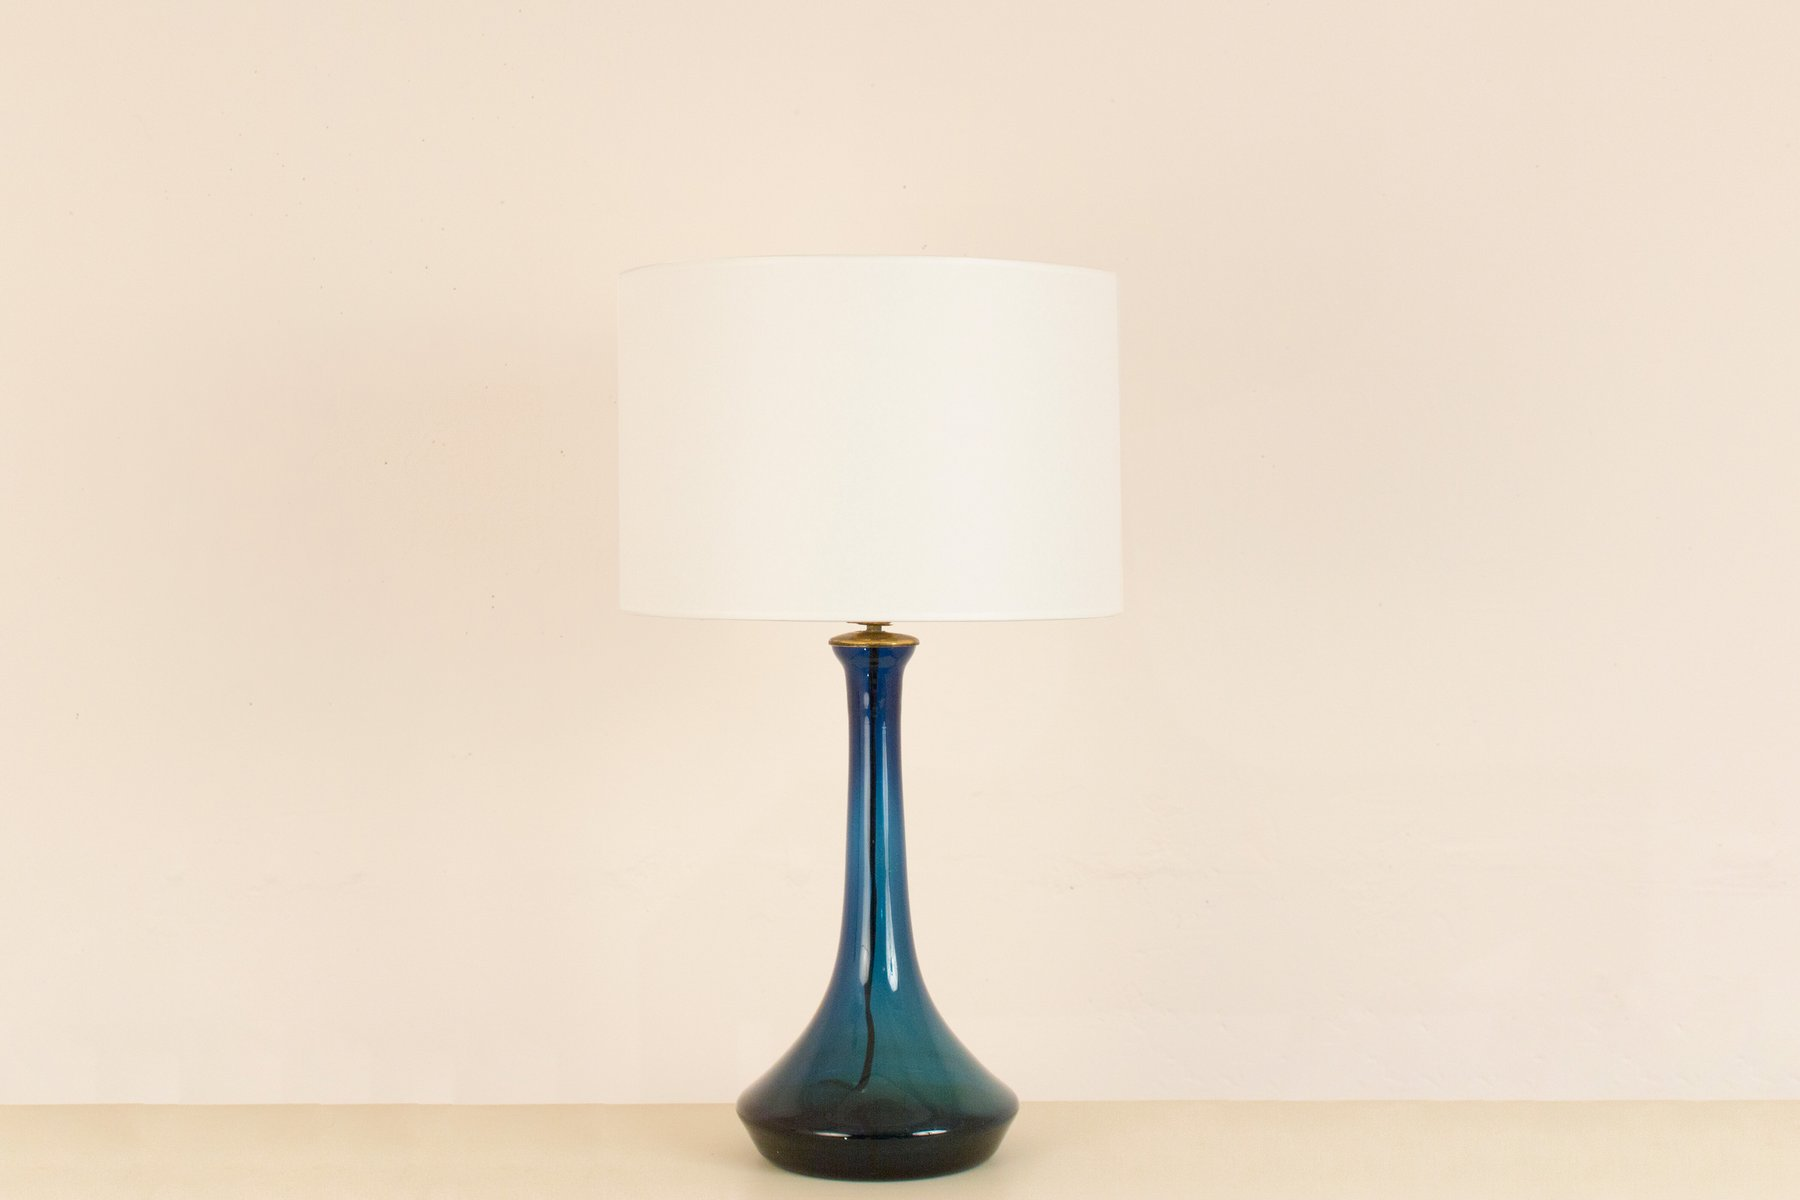 Mid century danish blown glass table lamp by lisbeth brams for fog mid century danish blown glass table lamp by lisbeth brams for fog and mrup 1966 for sale at pamono mozeypictures Gallery